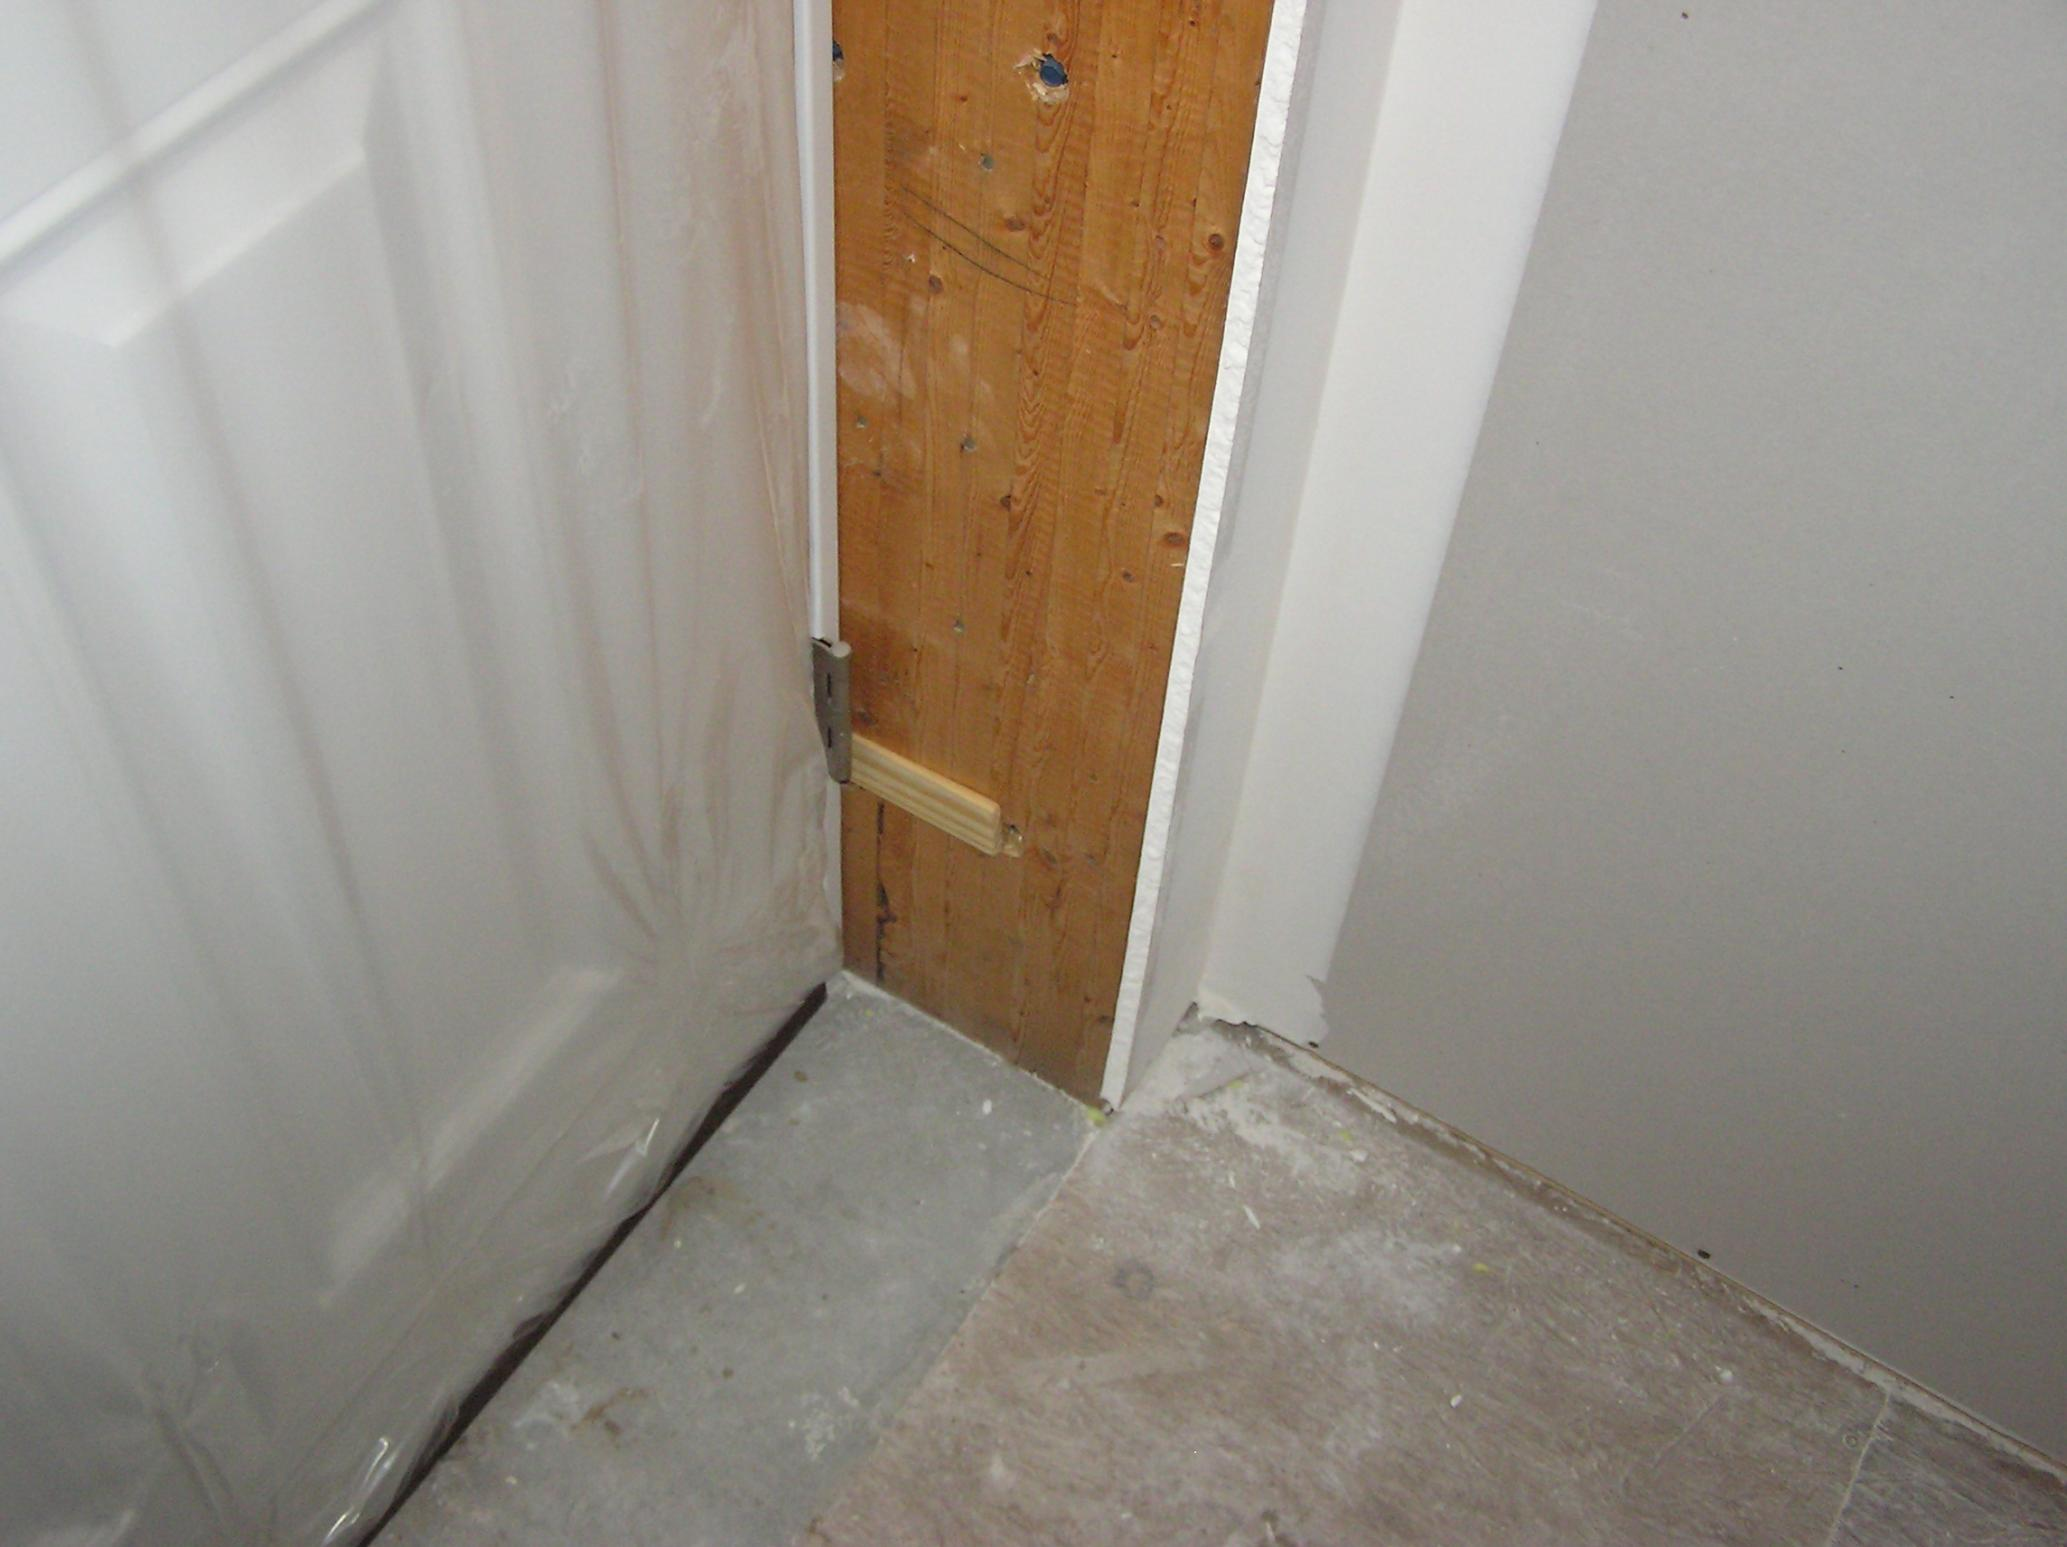 Doors Jambs: Extension Jamb Dilema